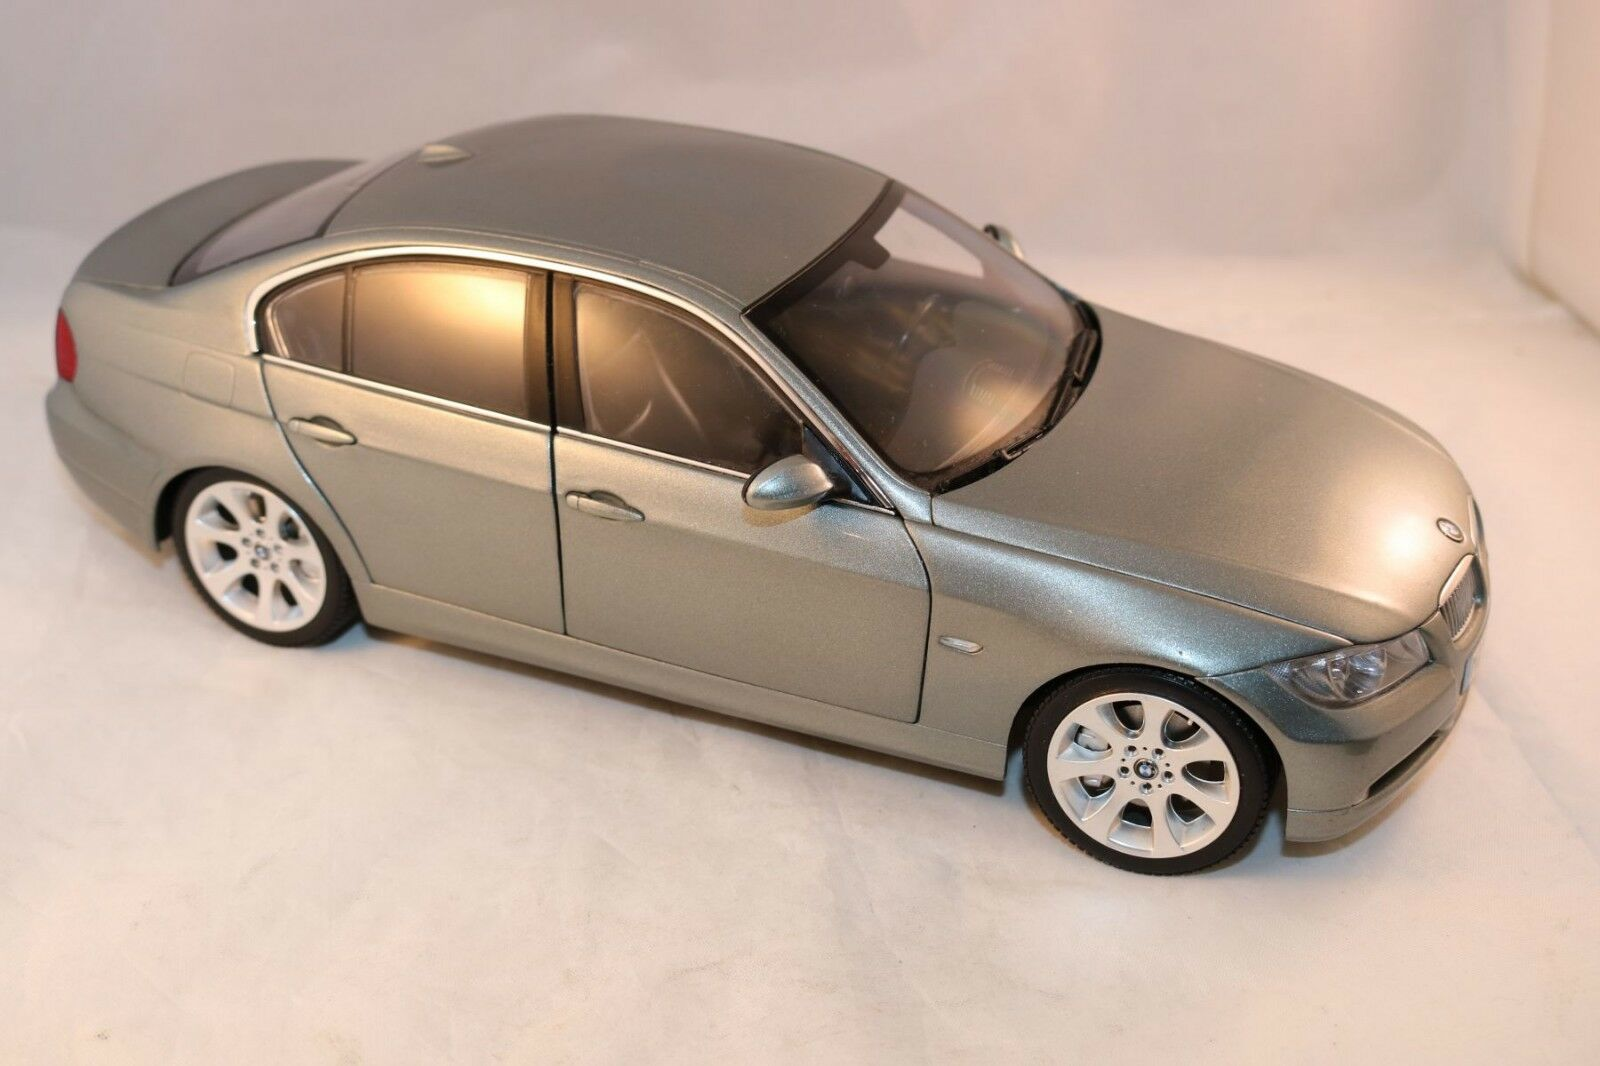 Kyosho Bmw 3 series metallic green green green dealer edition very near mint condition 1 18 a3f55c